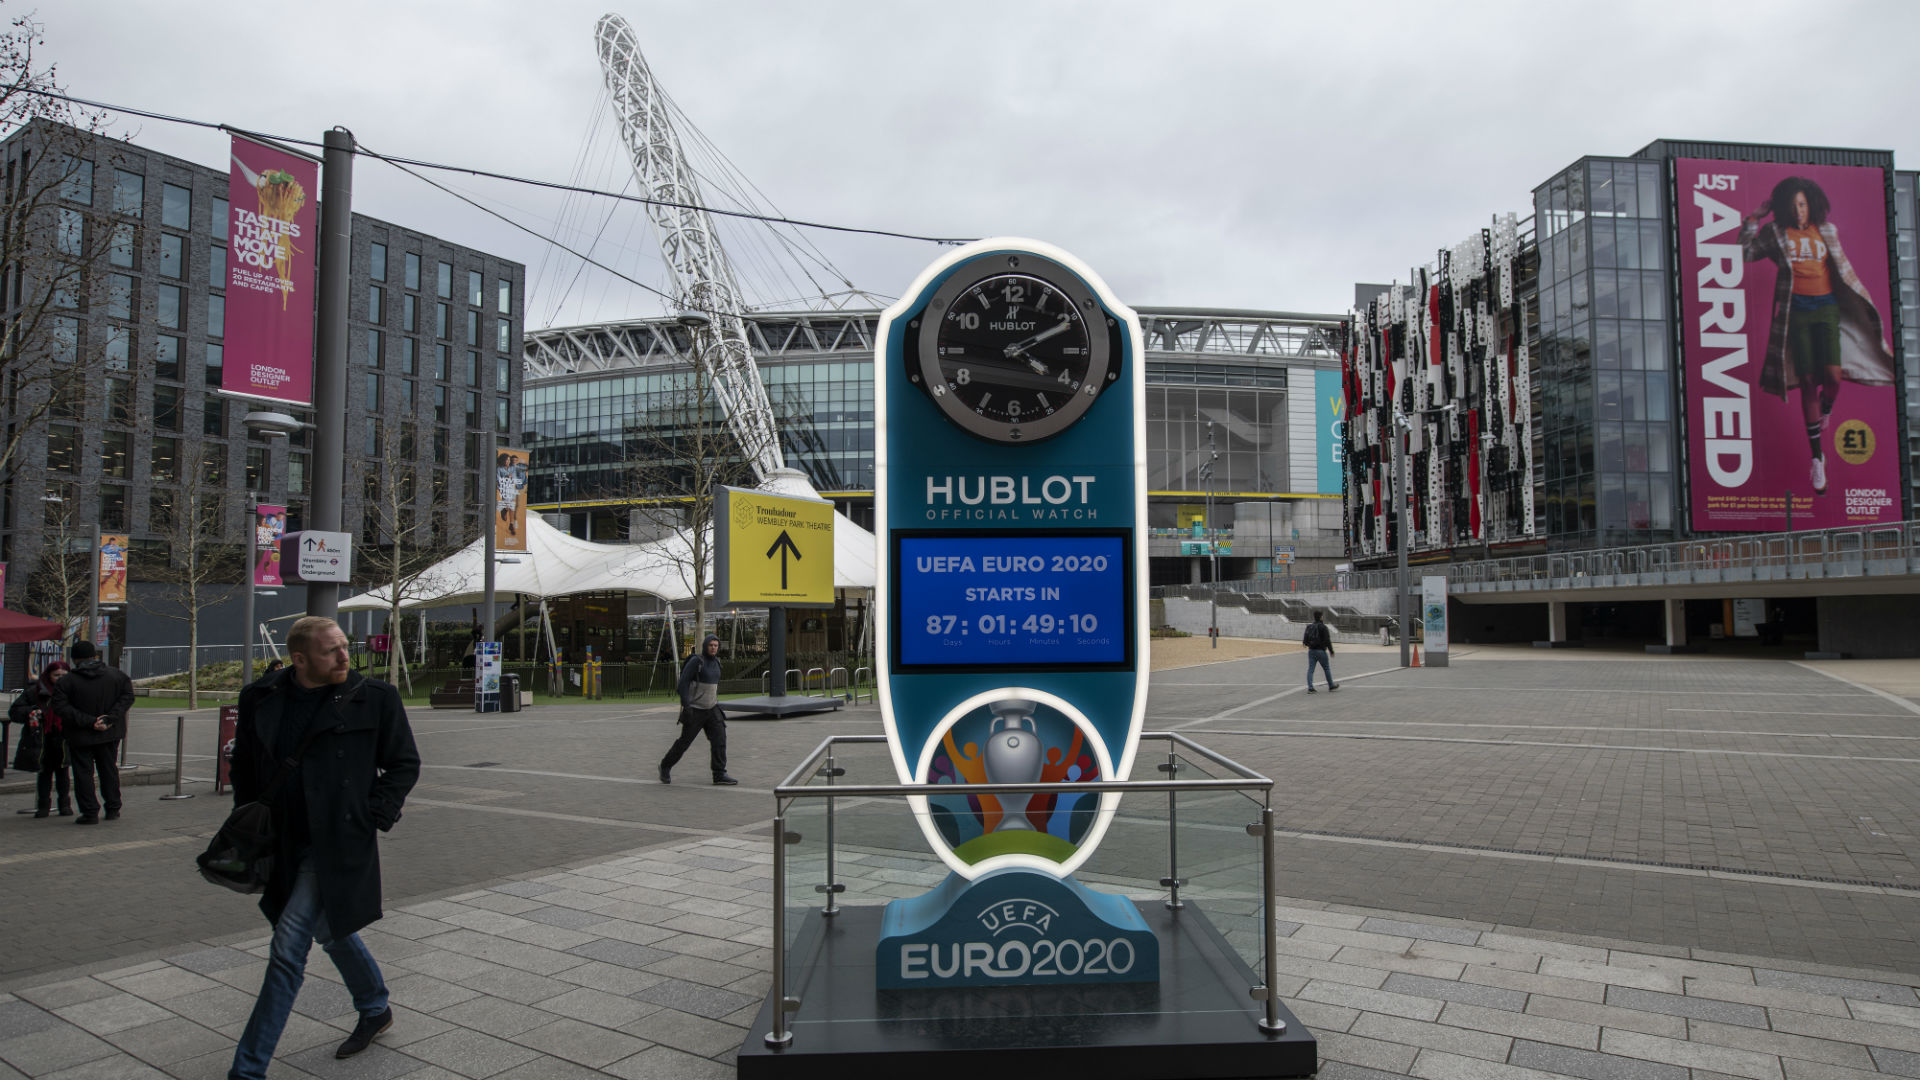 Coronavirus: Euro 2020 host city uncertainties force UEFA meeting delay